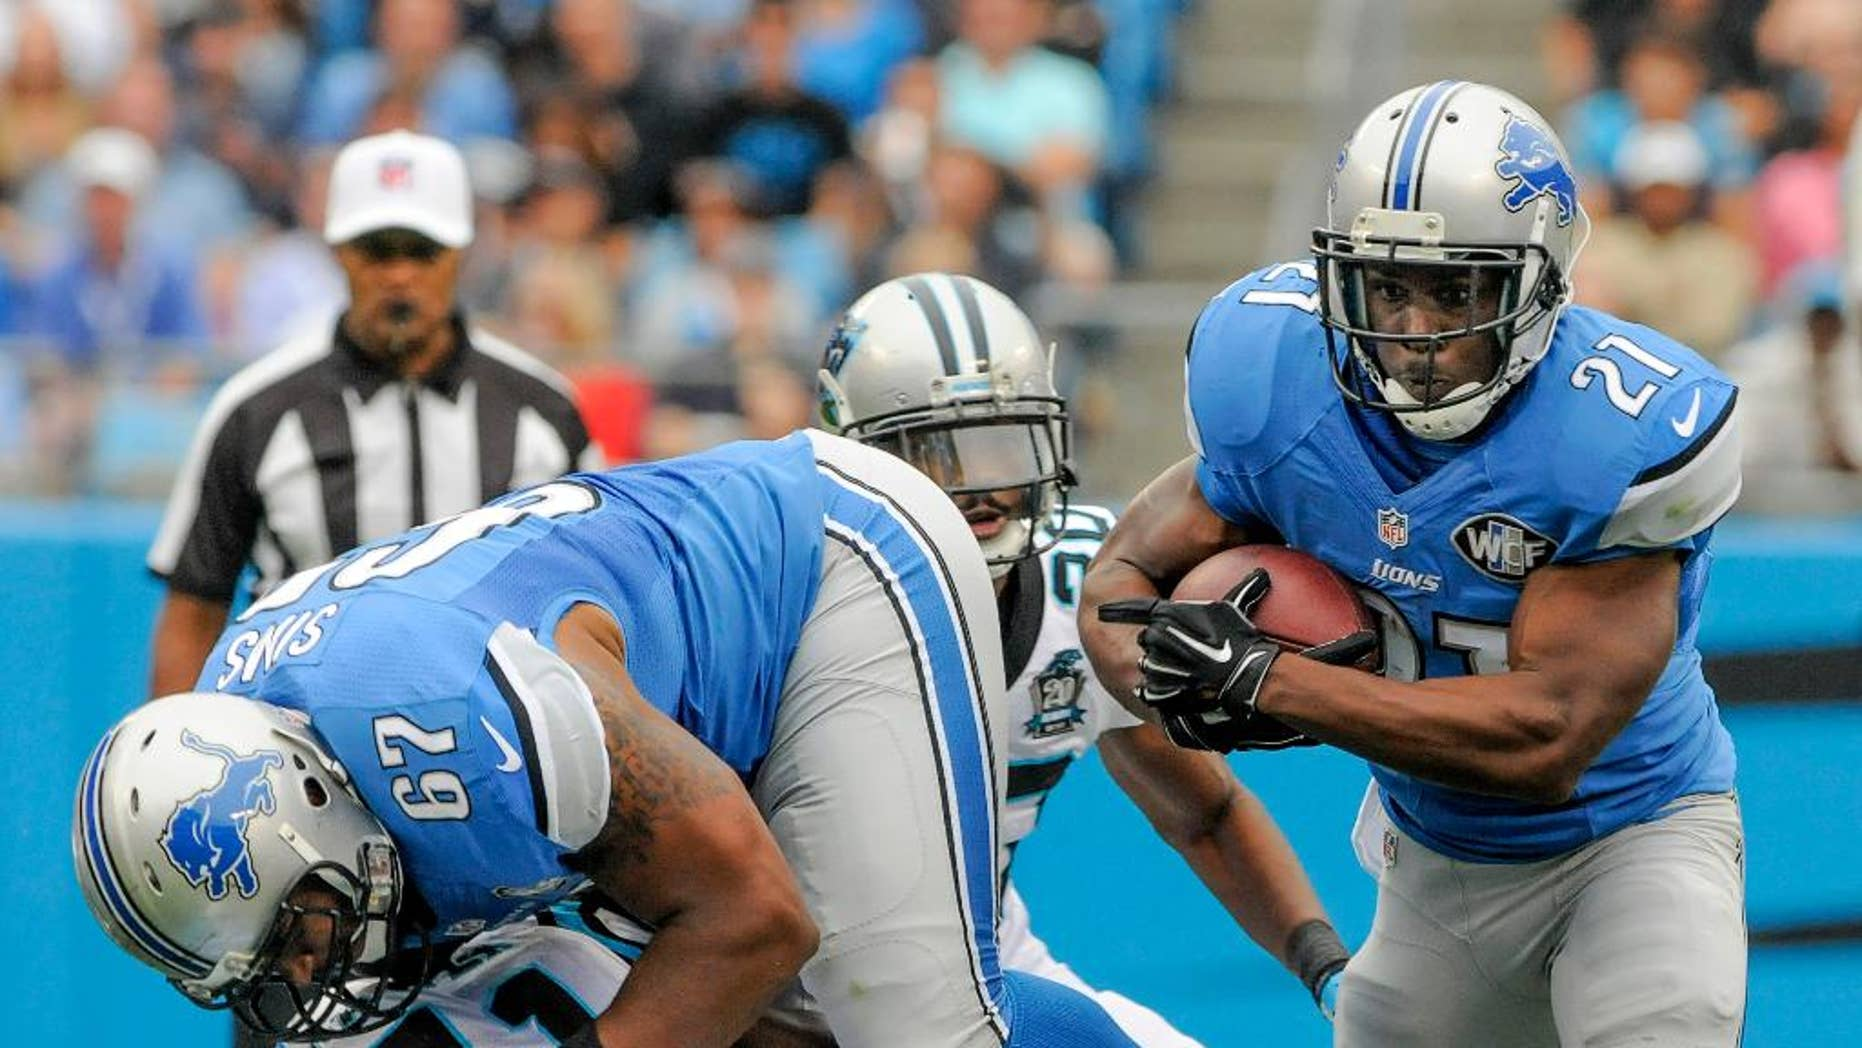 FILE - In this Sept. 14, 2014, file photo, Detroit Lions running back Reggie Bush (21) runs the ball during an NFL football game against the Carolina Panthers in Charlotte, N.C. The Lions signed Bush as a free agent before last season and  the elusive running back ran for 1,006 yards, the second-highest total of his career. But so far this season, Detroit's running game has been quiet, and that's something the Lions hope to change when they host Green Bay on Sunday.(AP Photo/Mike McCarn, File)